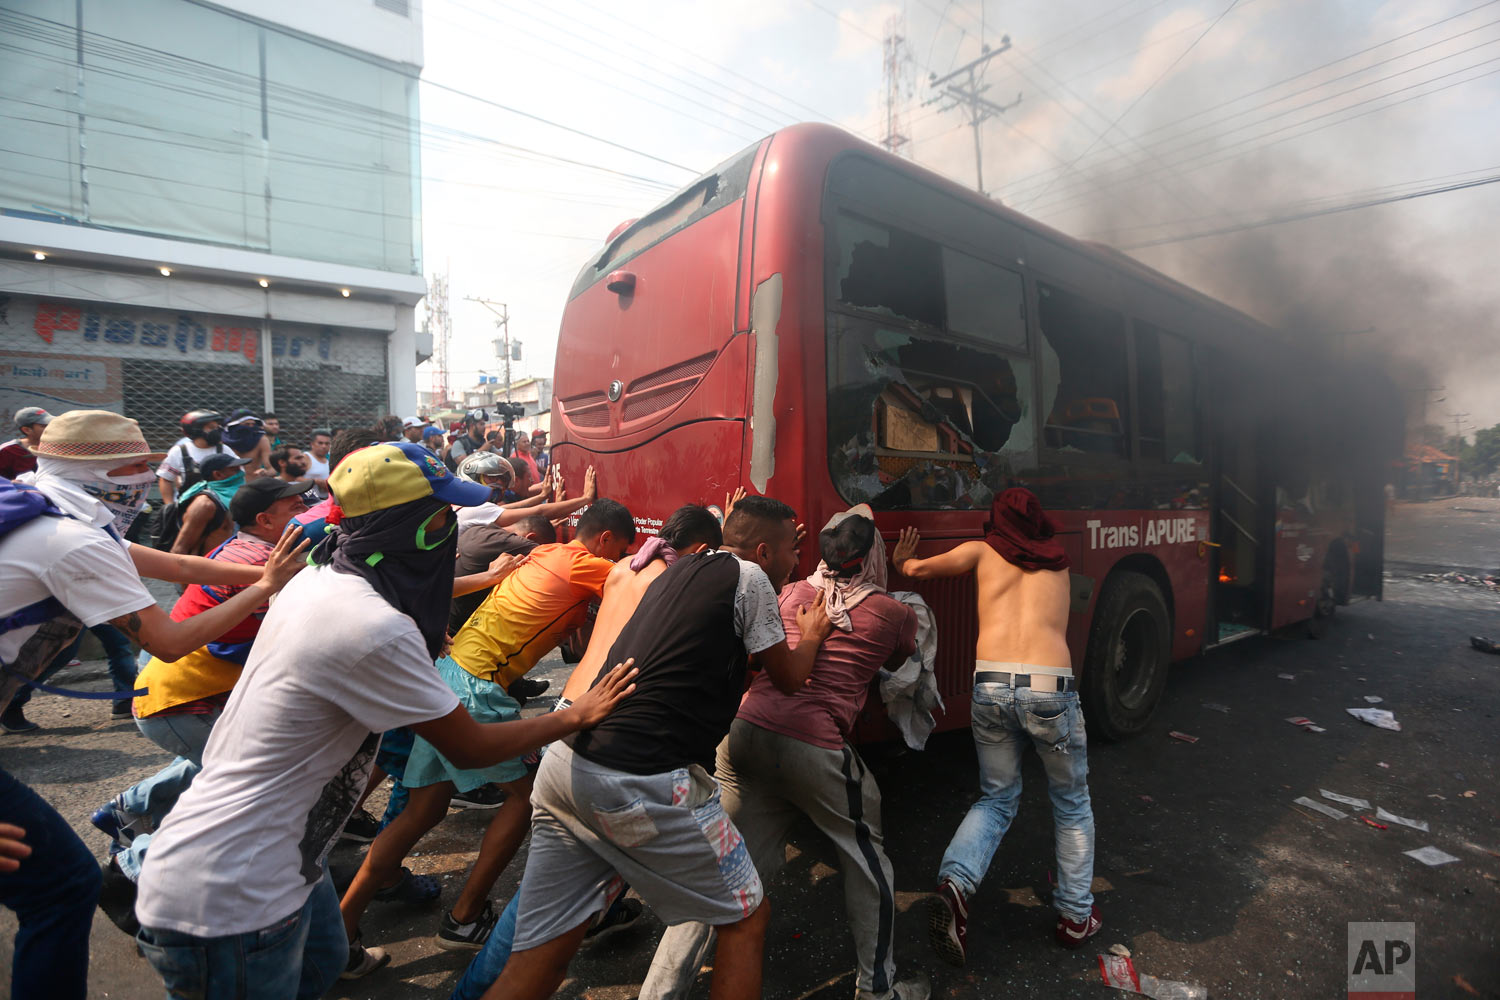 Demonstrators push away a bus that was torched during clashes with the Venezuelan Bolivarian National Guard in Urena, Venezuela, near the border with Colombia, Saturday, Feb. 23, 2019. (AP Photo/Fernando Llano)